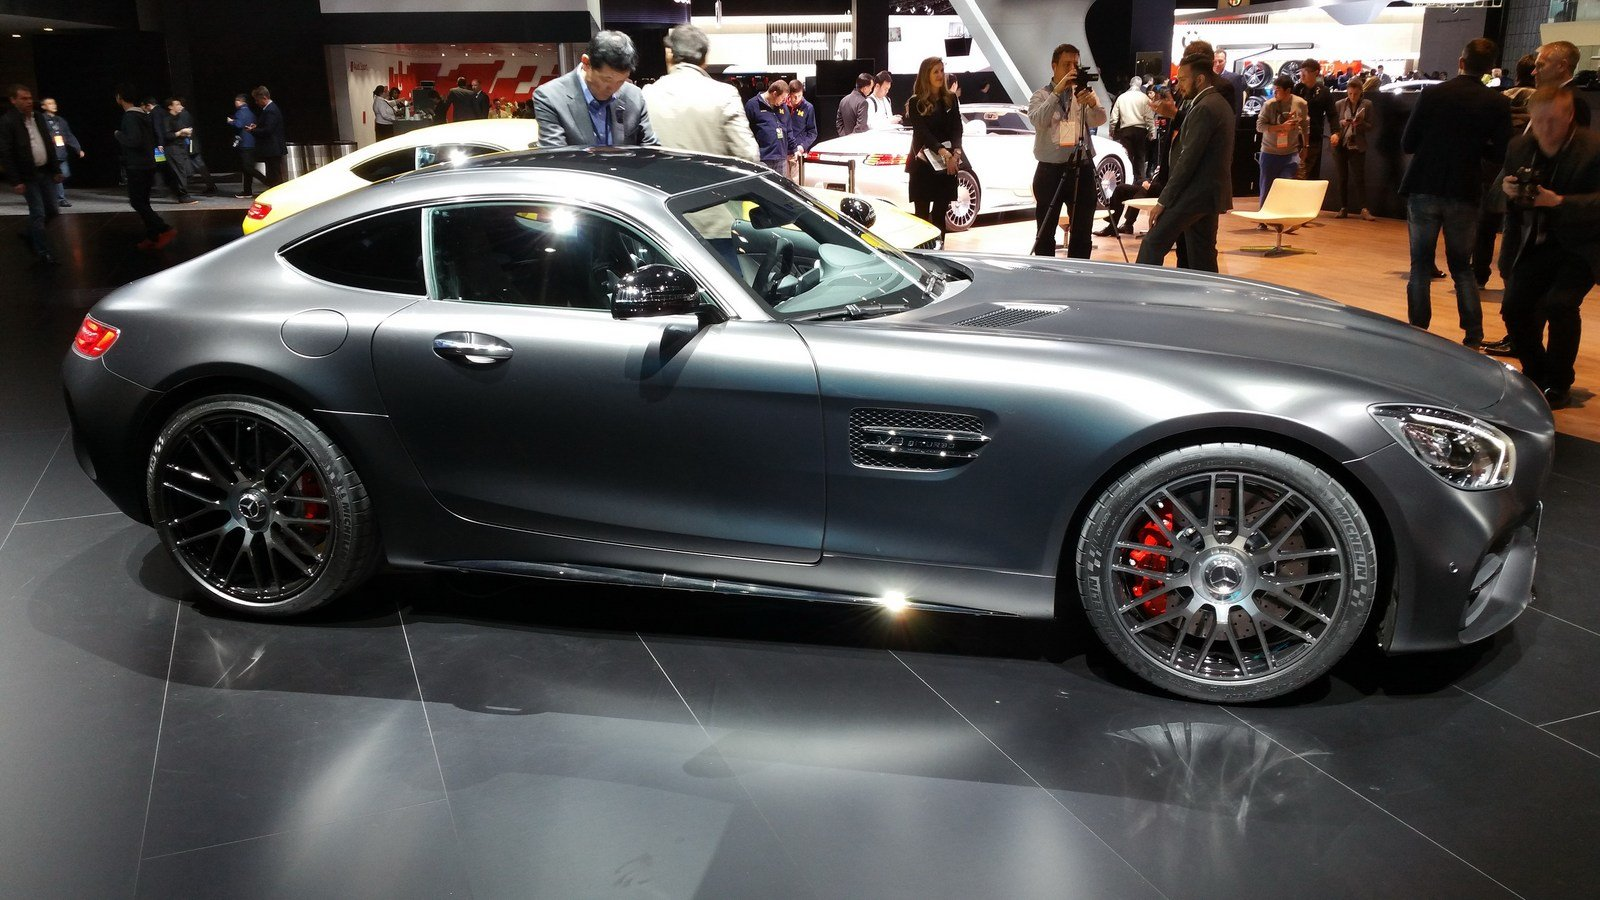 2018 mercedes amg gt c coupe picture 700781 car review top speed. Black Bedroom Furniture Sets. Home Design Ideas